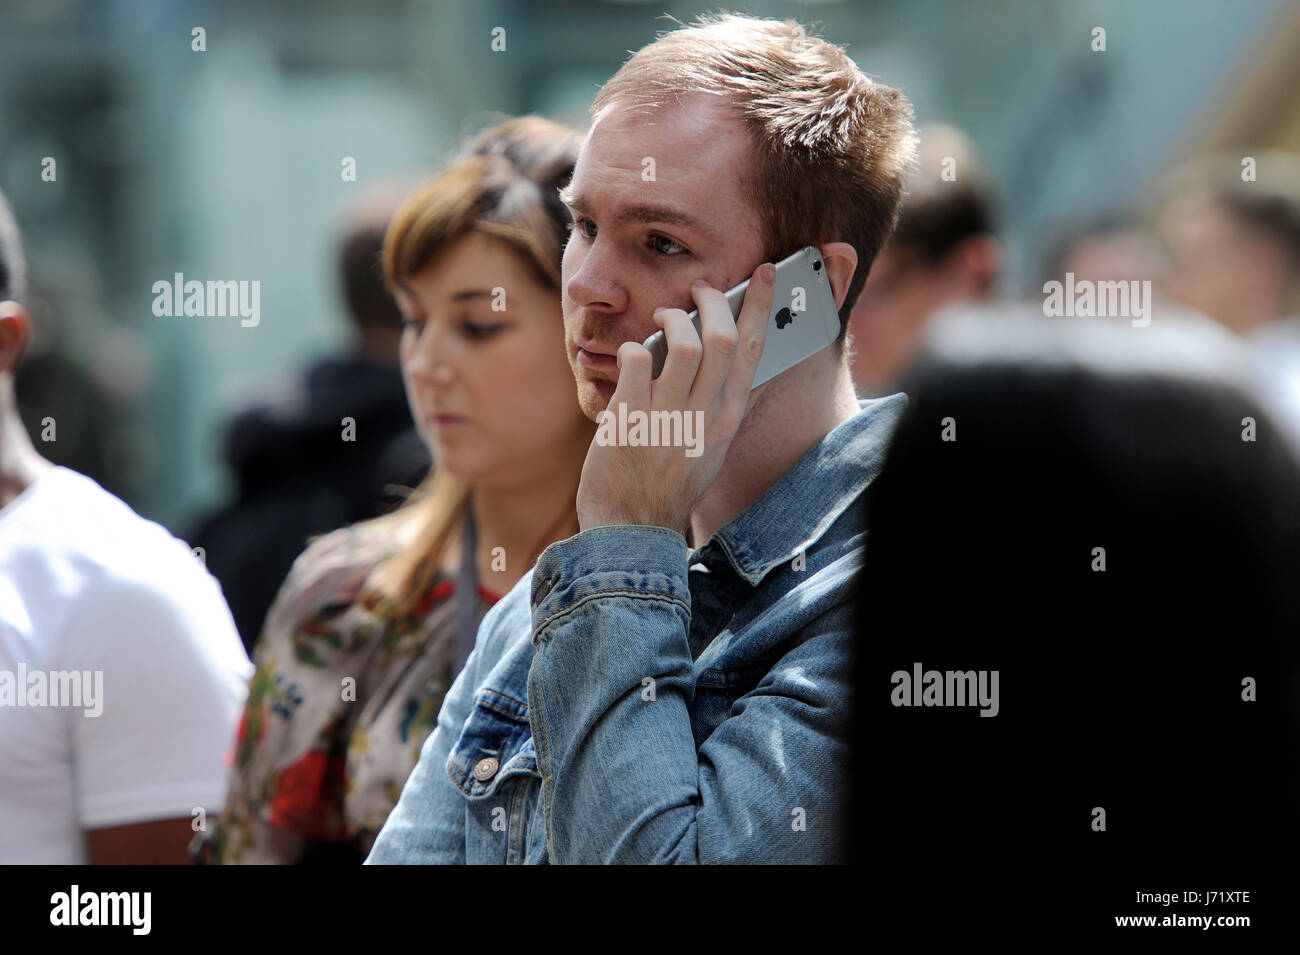 Manchester, UK. 23rd May, 2017. The Arndale shopping centre in Manchester has been evacuated after a suspect package - Stock Image